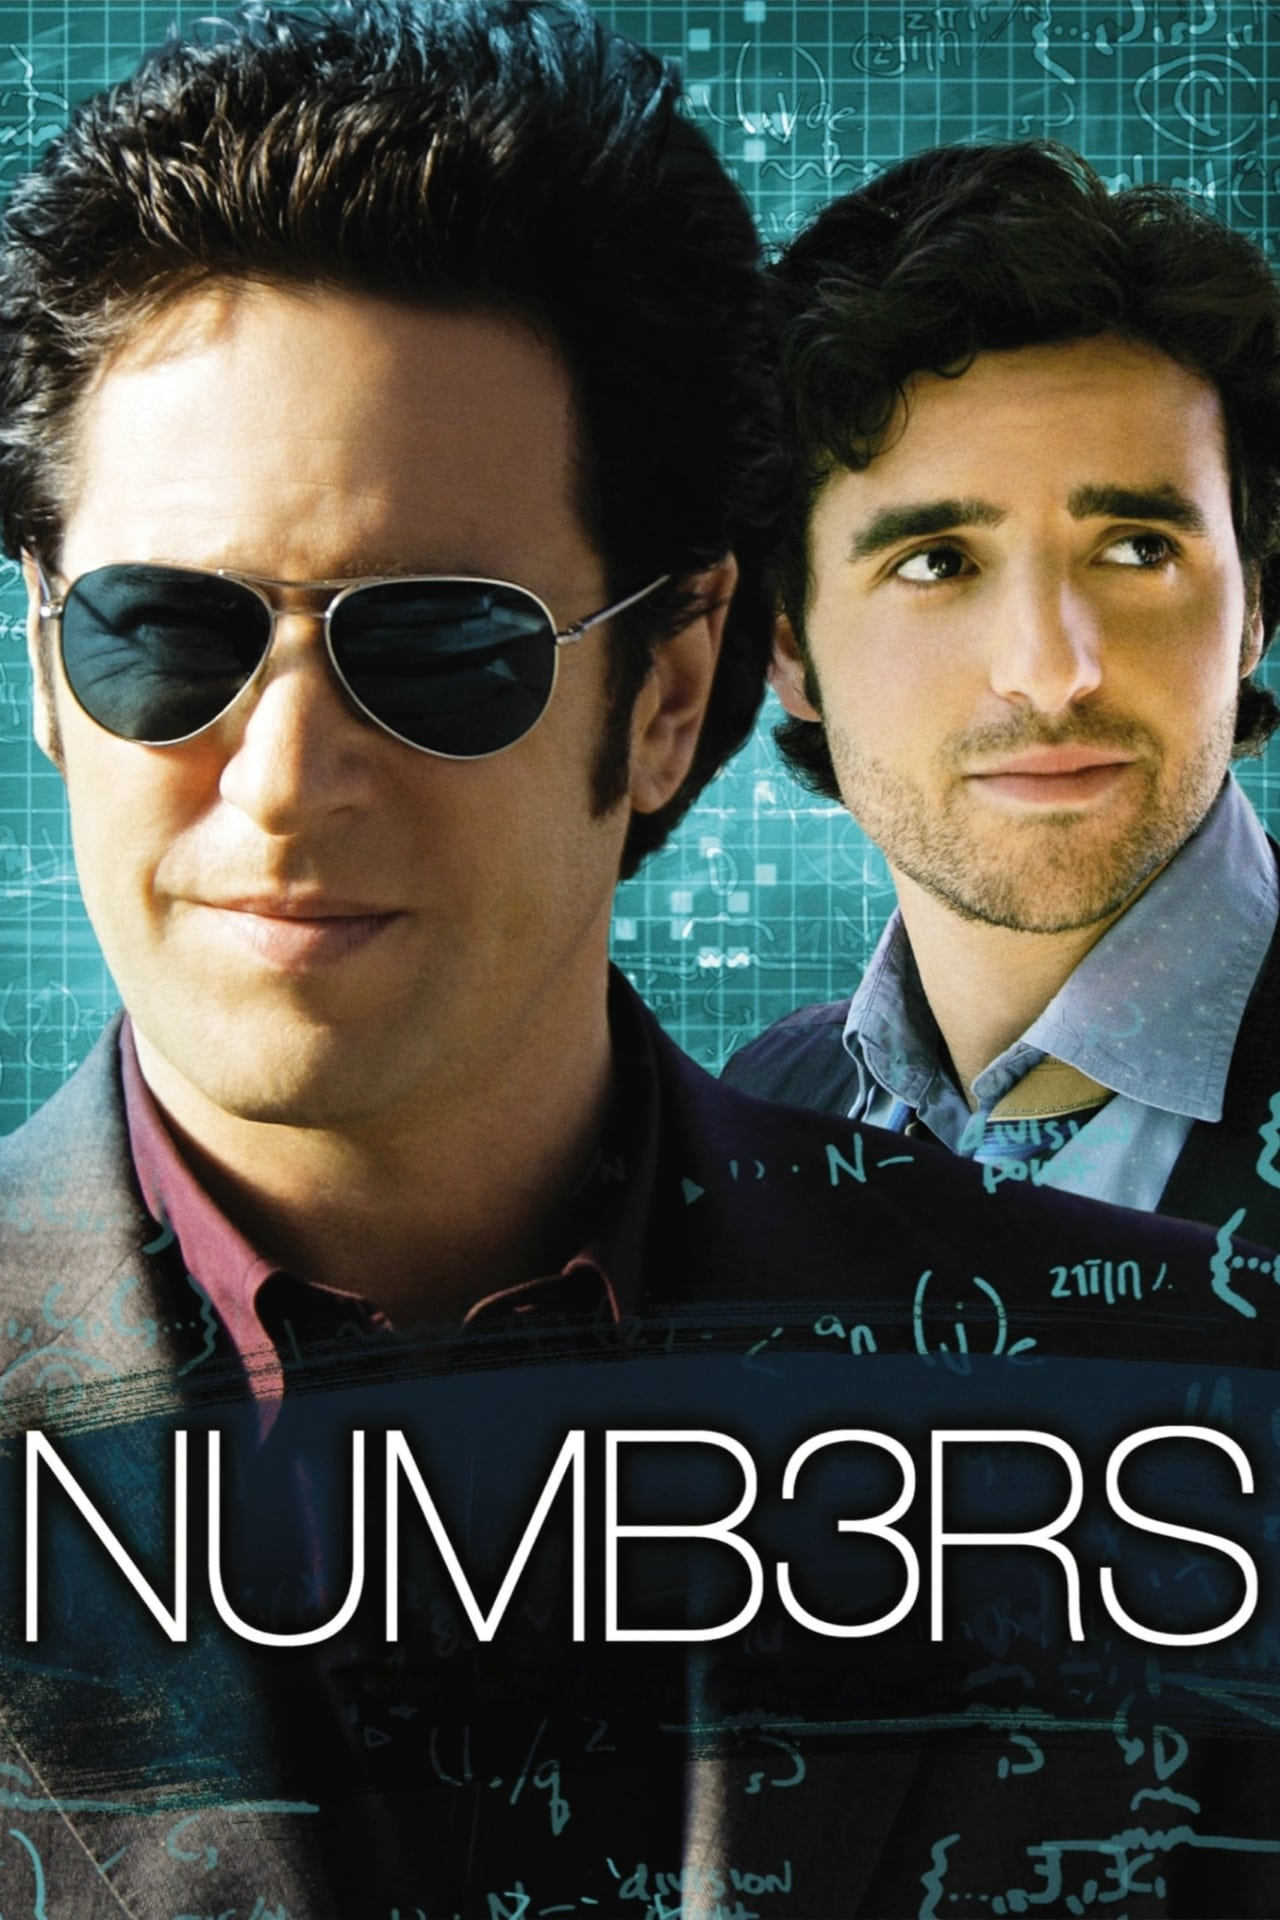 Numb3rs (season 6)